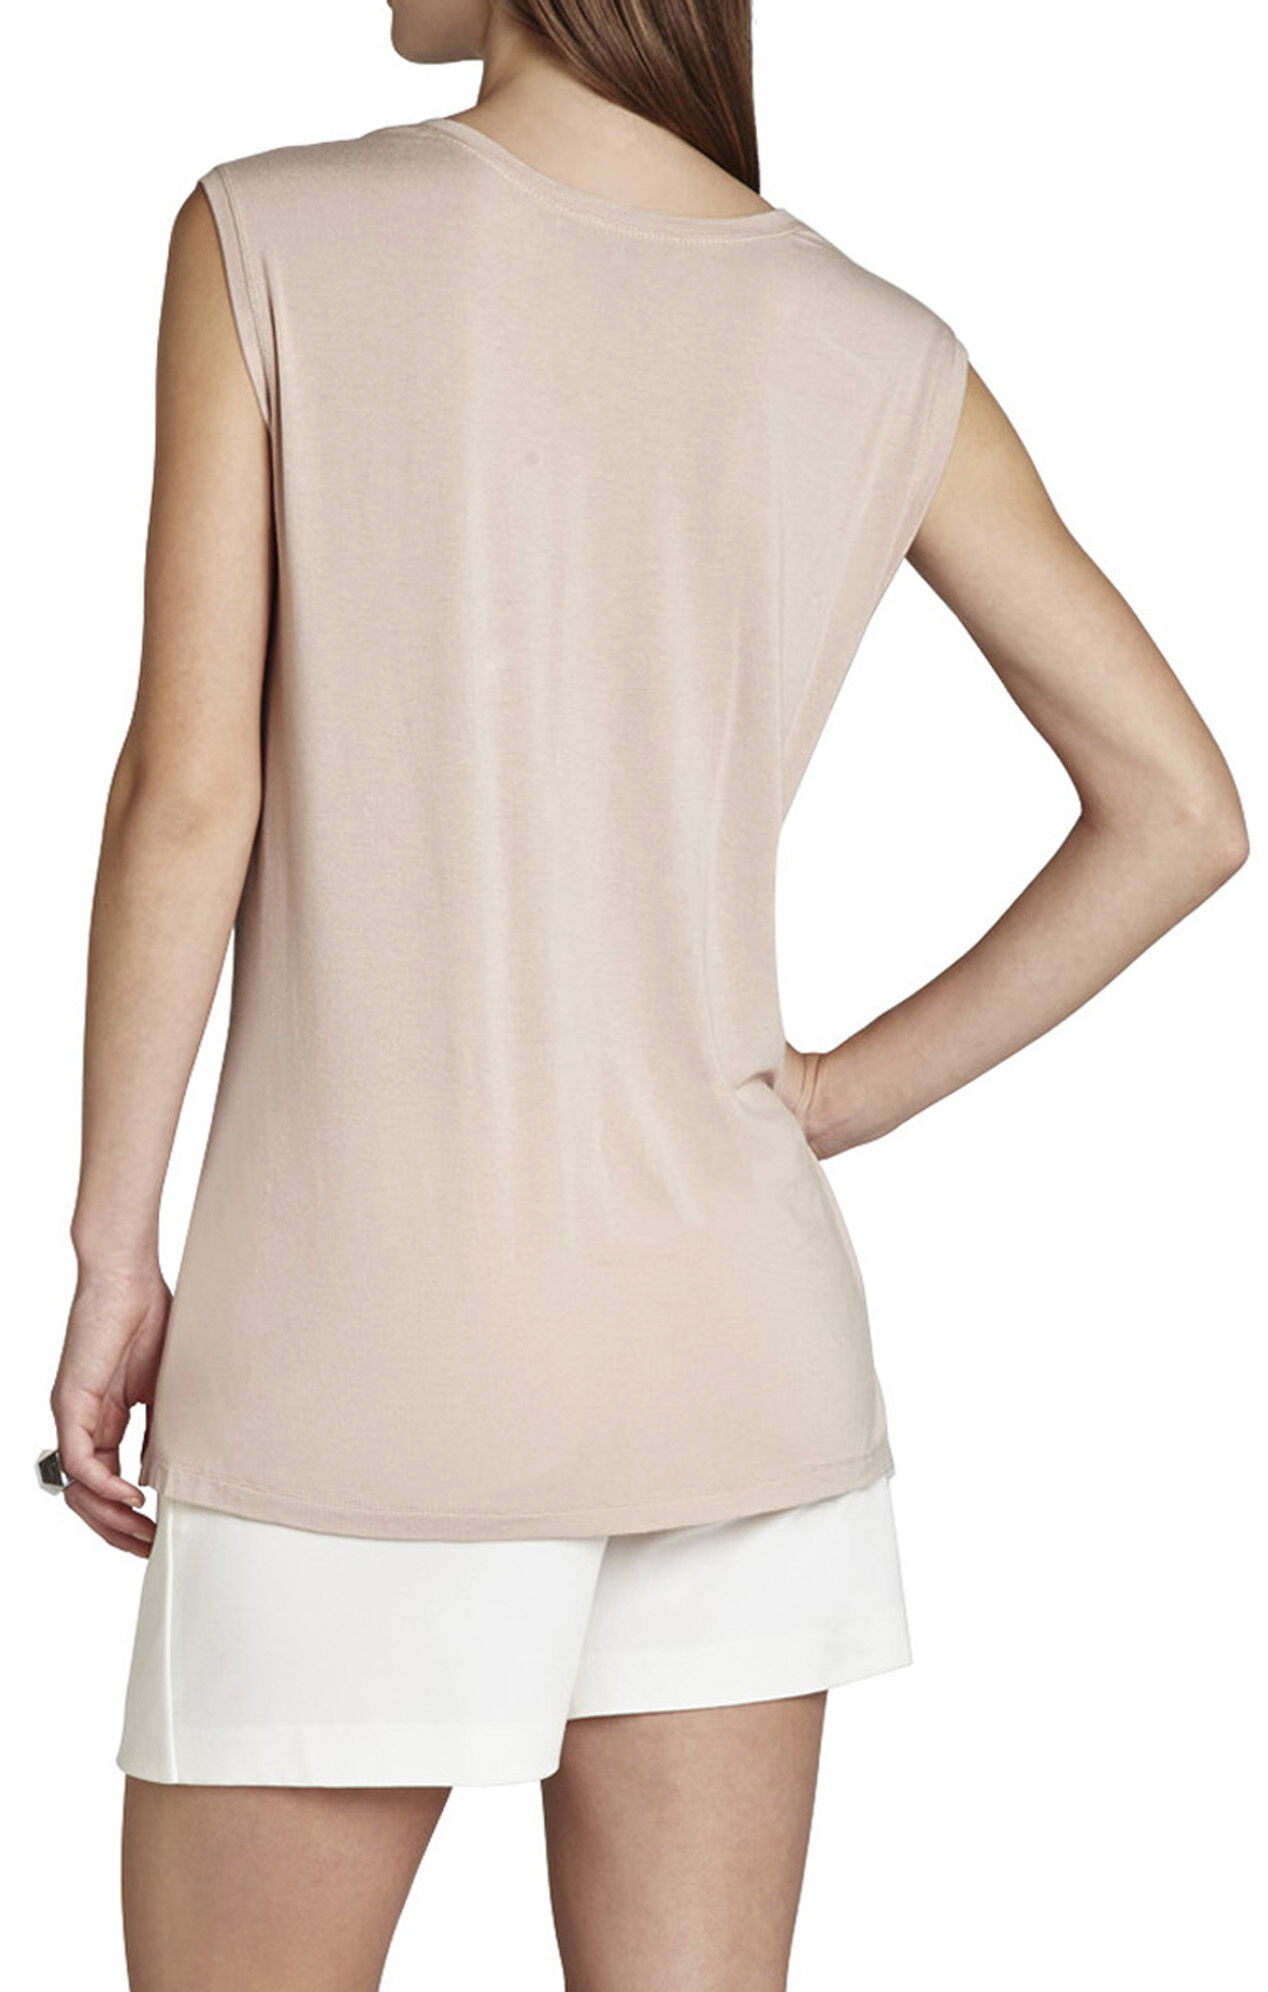 Lara V-Neck Top With Twist-Front Hem